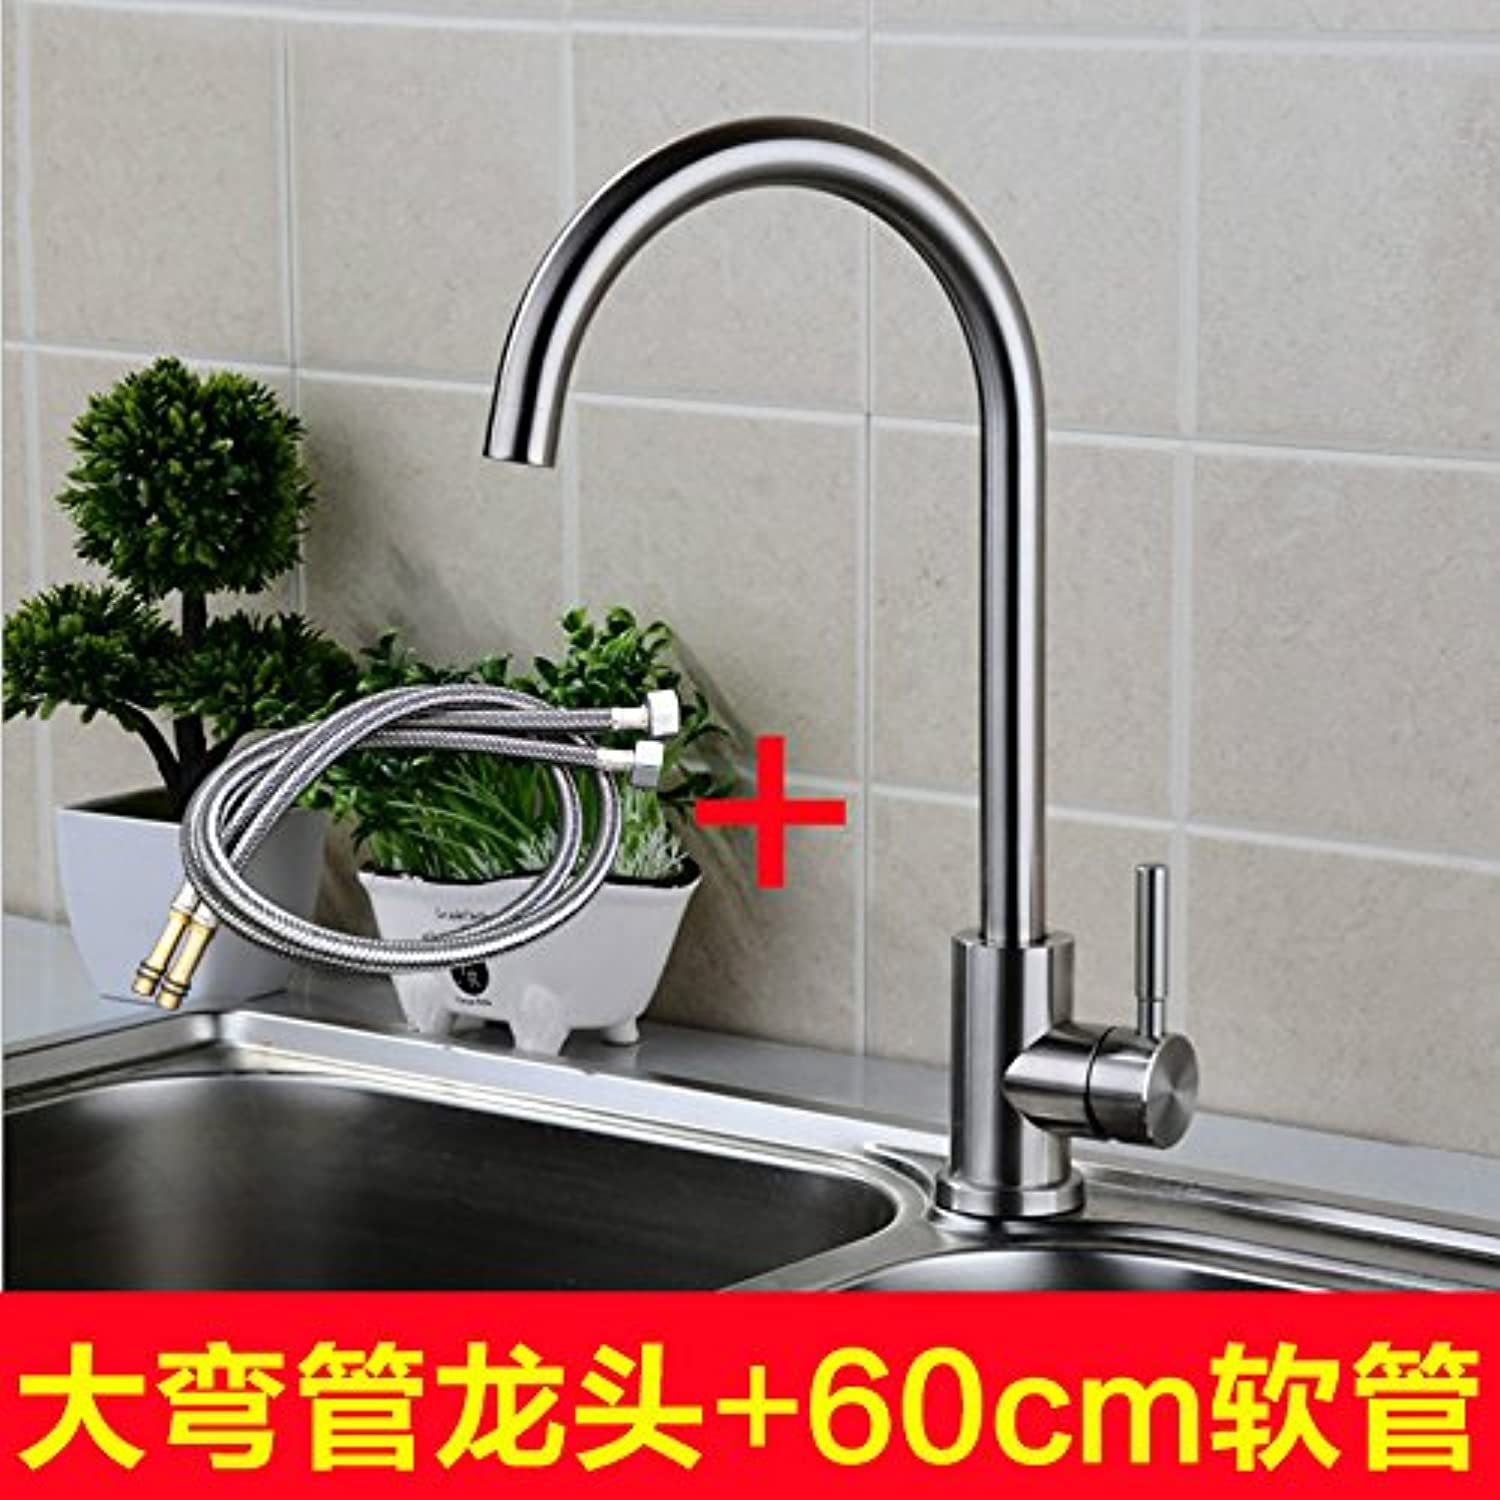 Pull Down Kitchen Sink Faucet BrassSakura Heightening Kitchen Sink hot and Cold Water Faucet 304 Stainless Steel Lead-Free Sink Faucet Brushed,Stainless Steel Large Curved Faucet + Two 60cm Hose